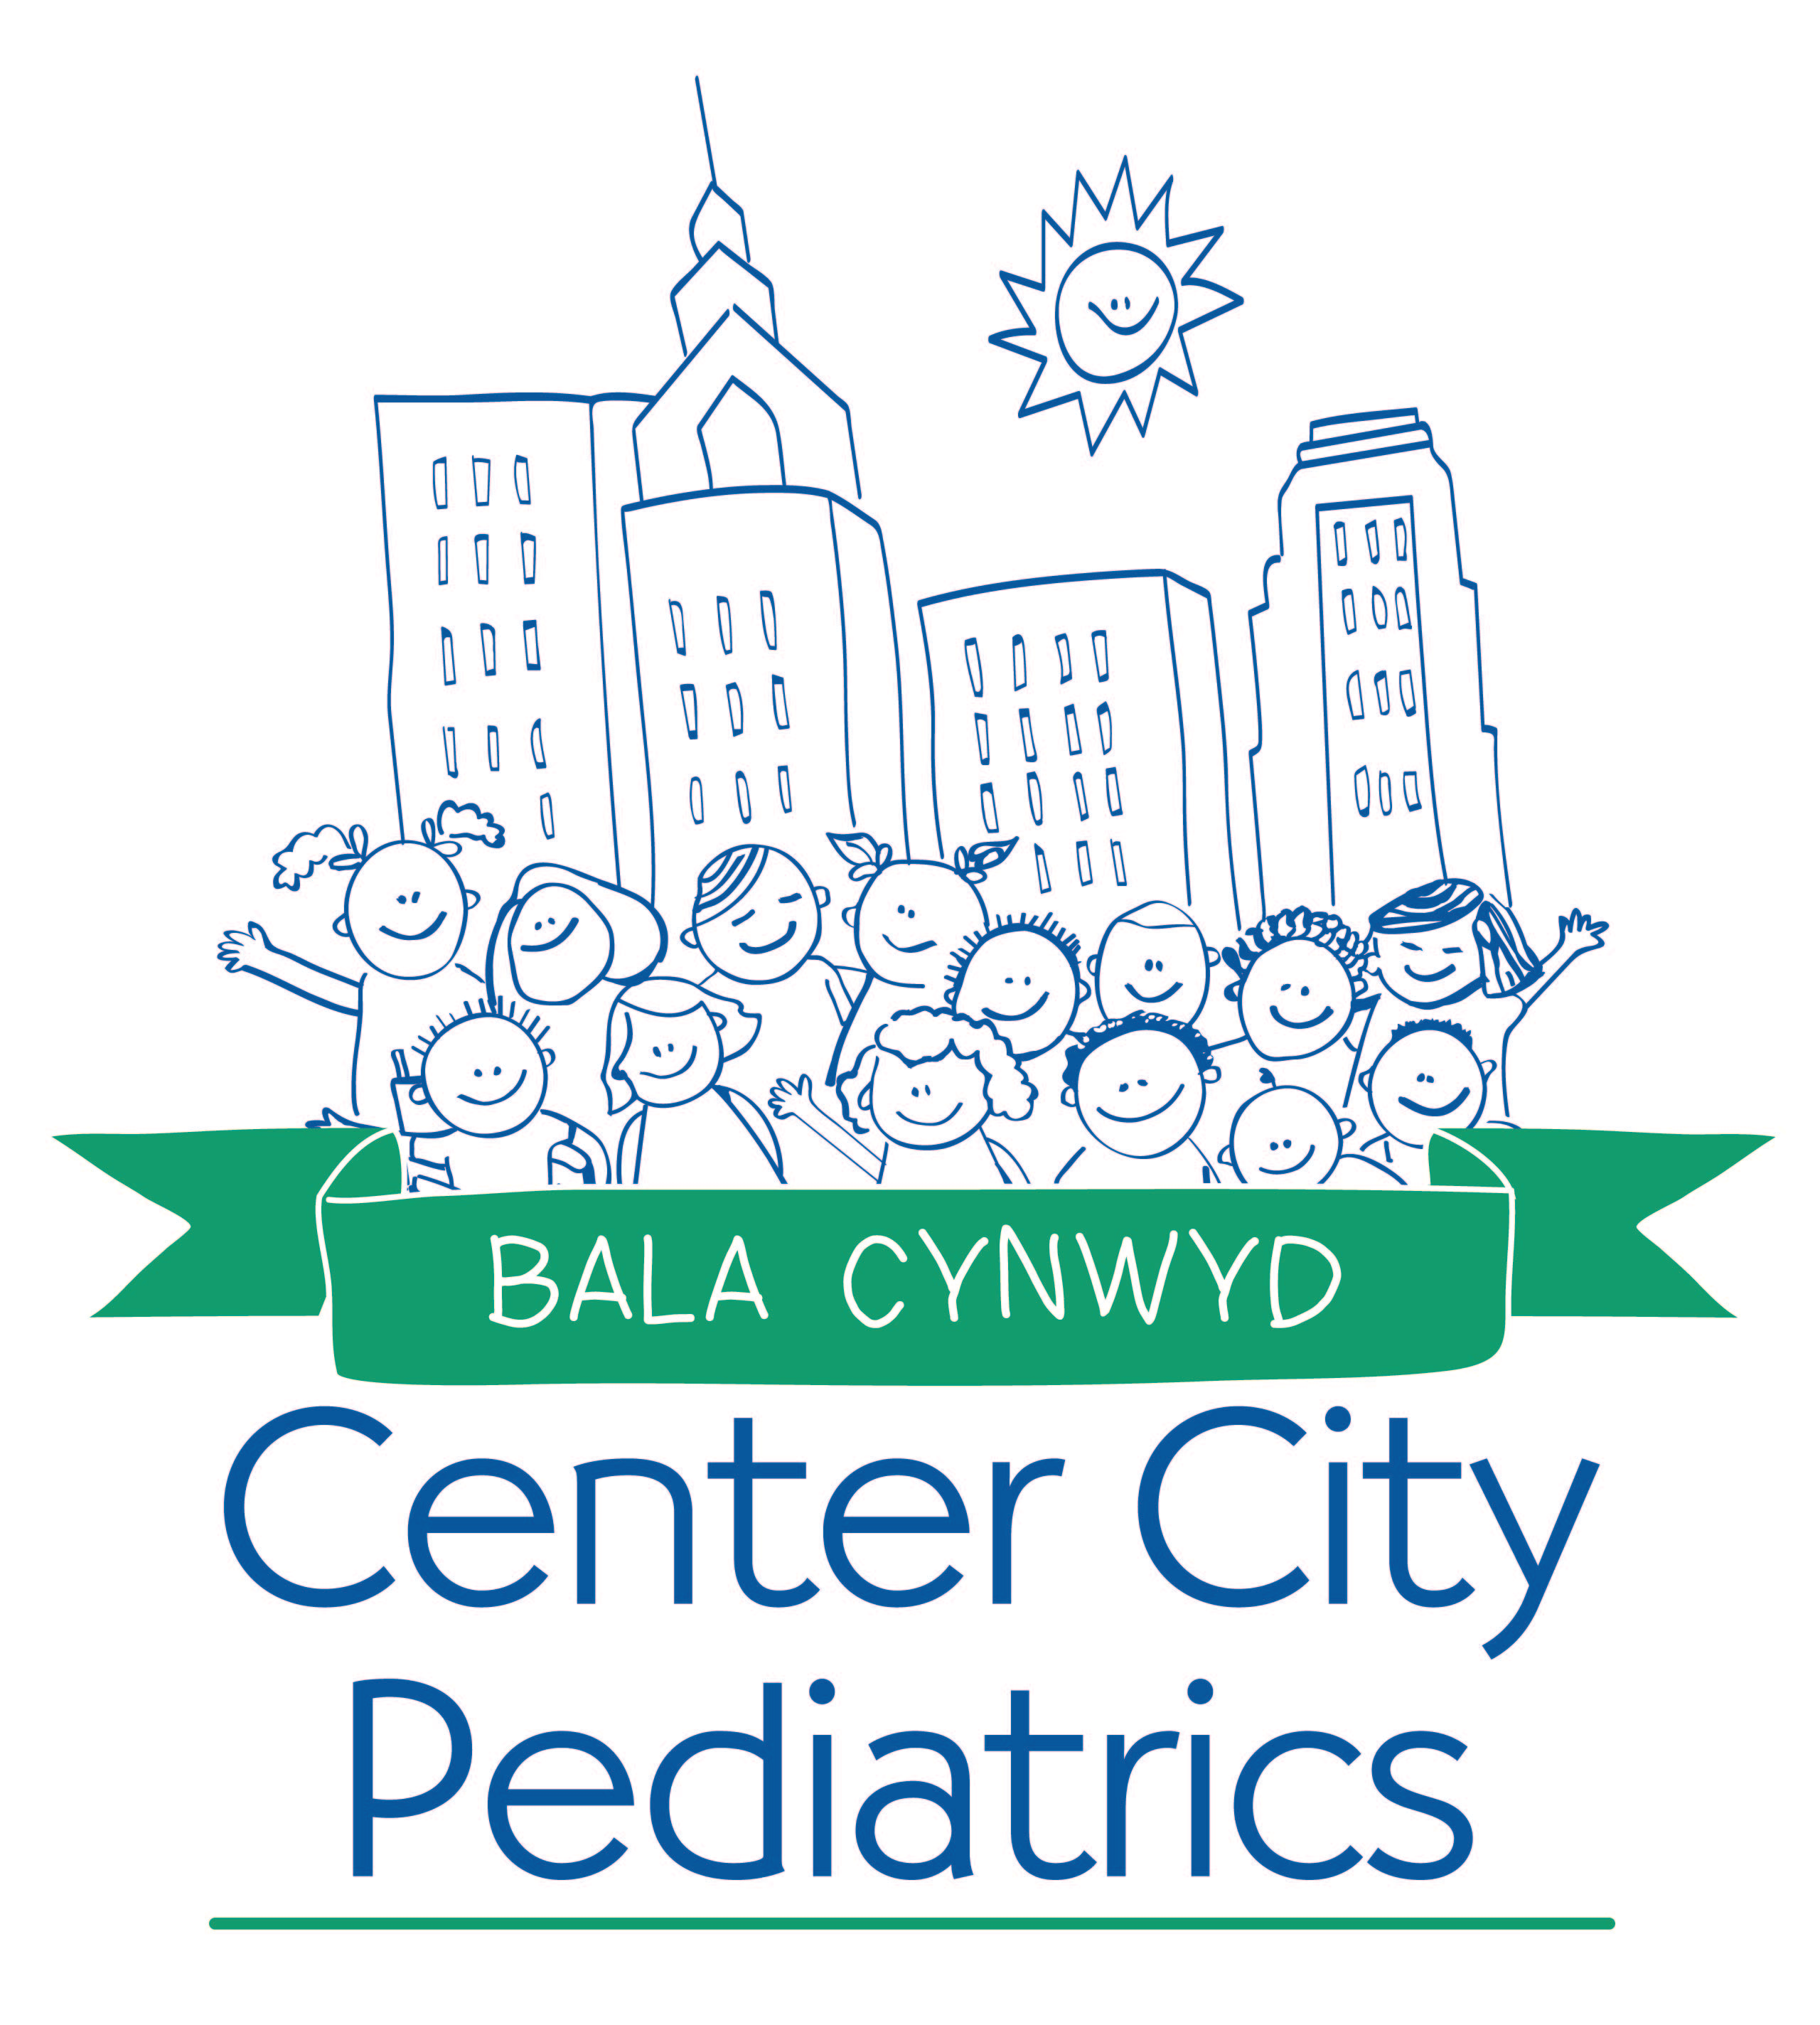 Bala Cynwyd - Center City Pediatrics